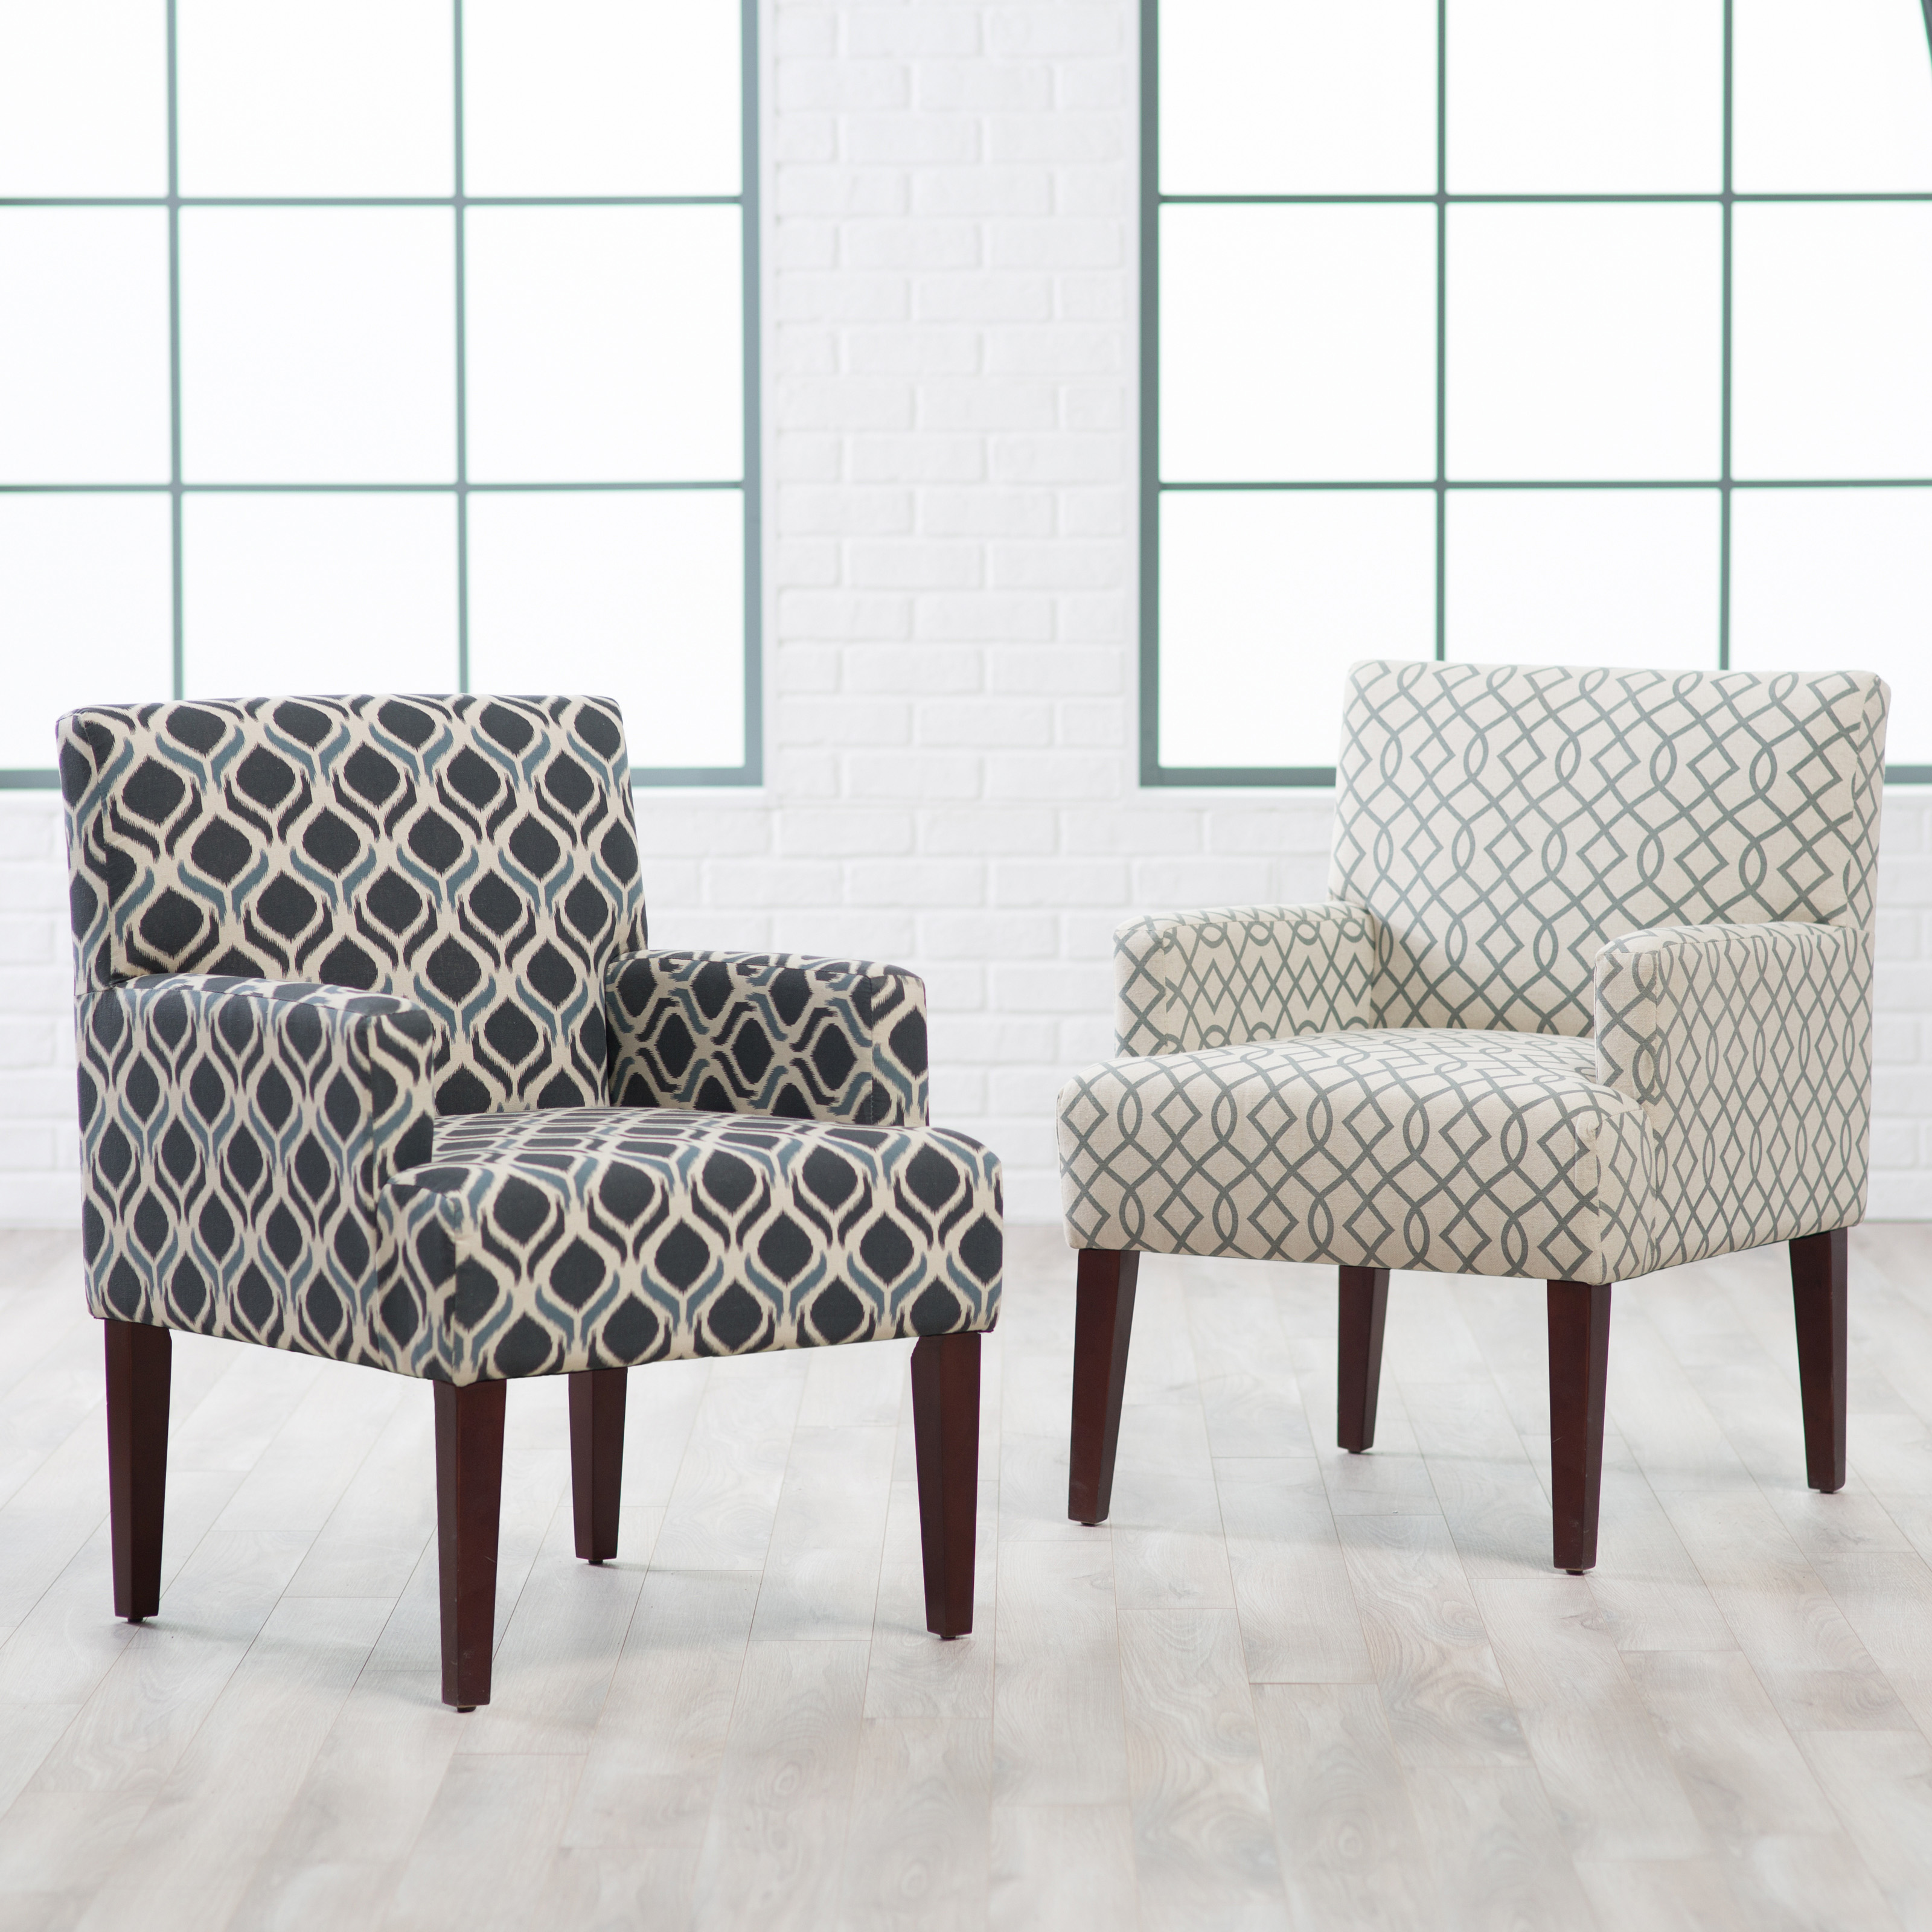 Perfect Living Room Occasional Chairs. Belham Living Geo Chair Room Occasional  Chairs E